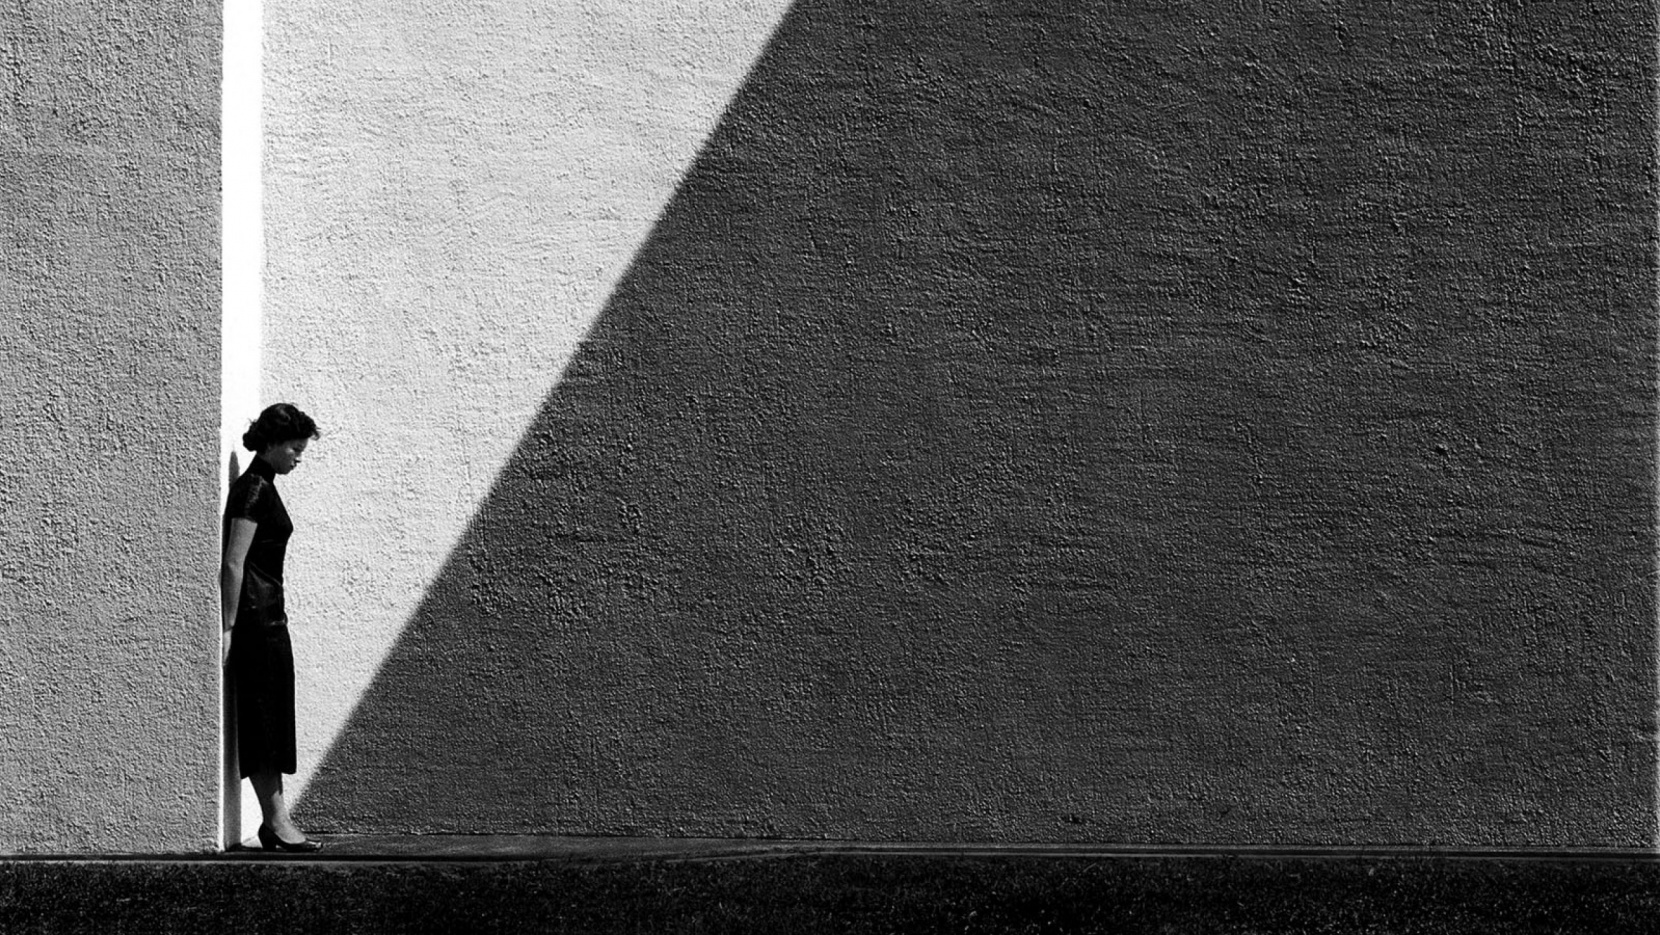 1950 S Hong Kong Inspires New Photography Series By Fan Ho